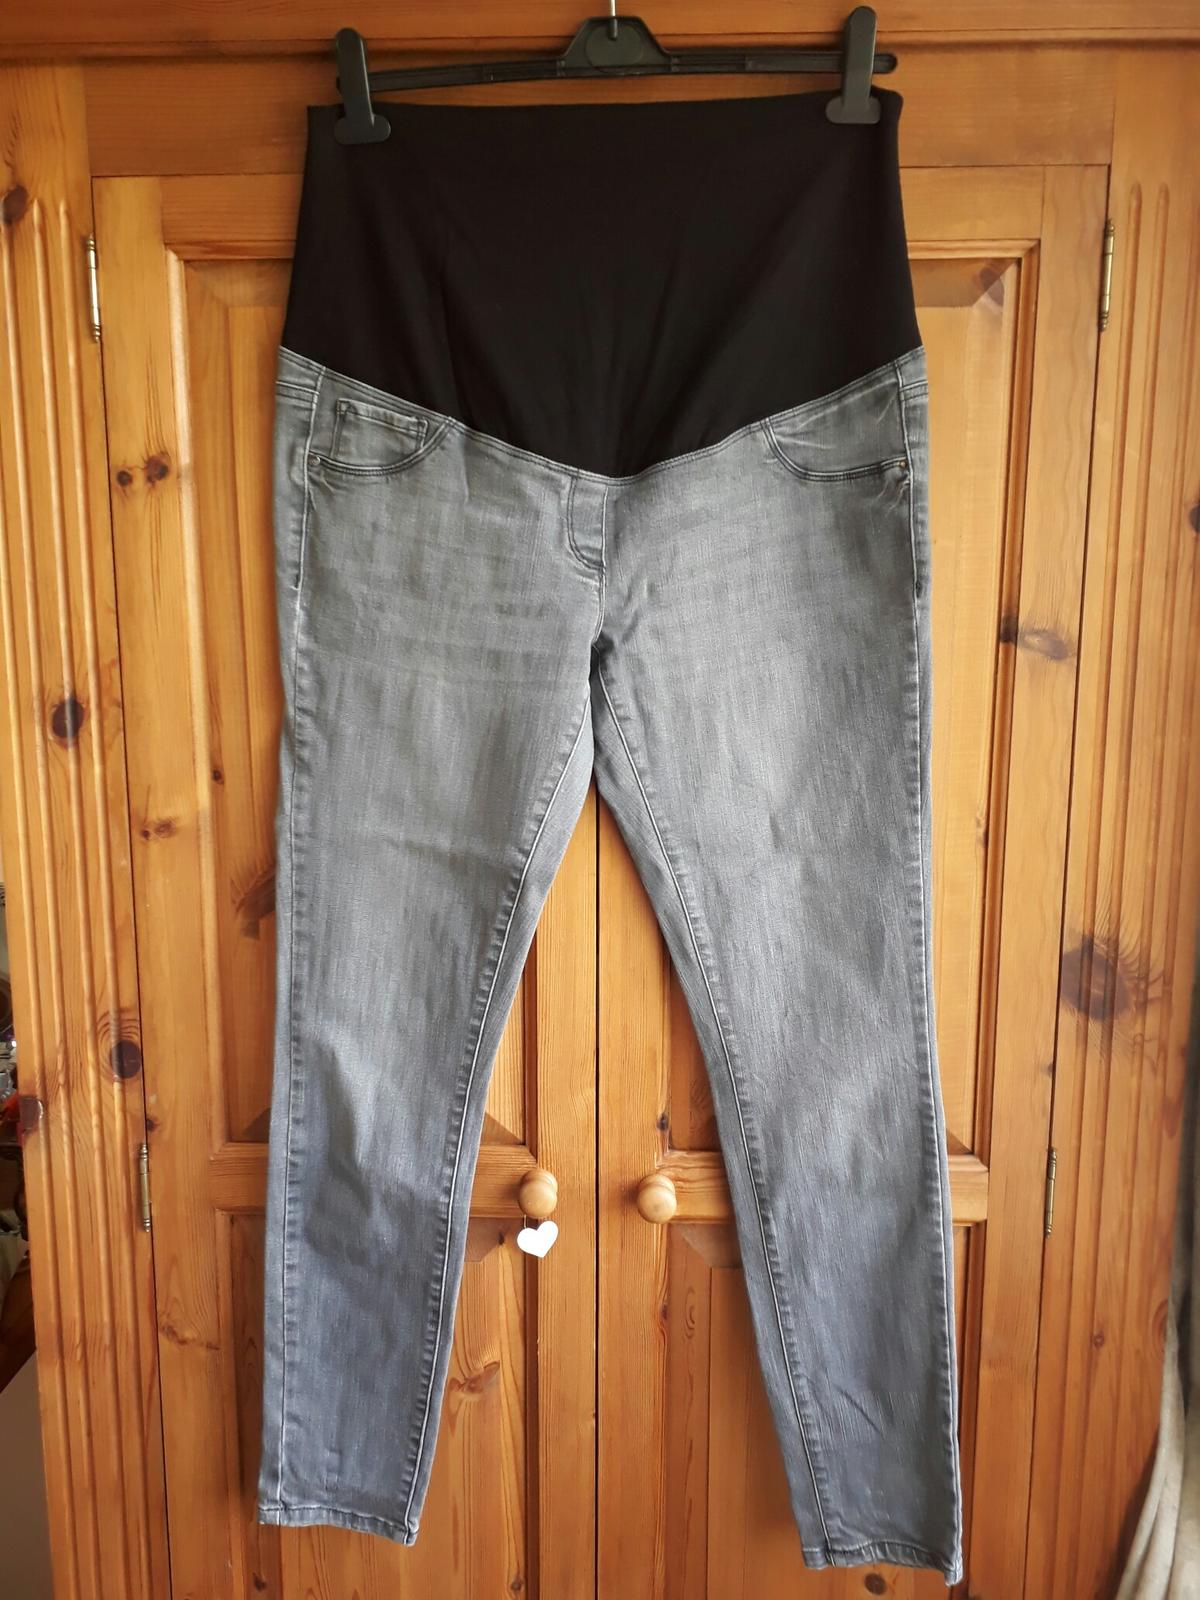 ec0a2df60ae1a Next Maternity Jeans Trousers Grey 14 long in PE14 Bridge for £5.00 ...